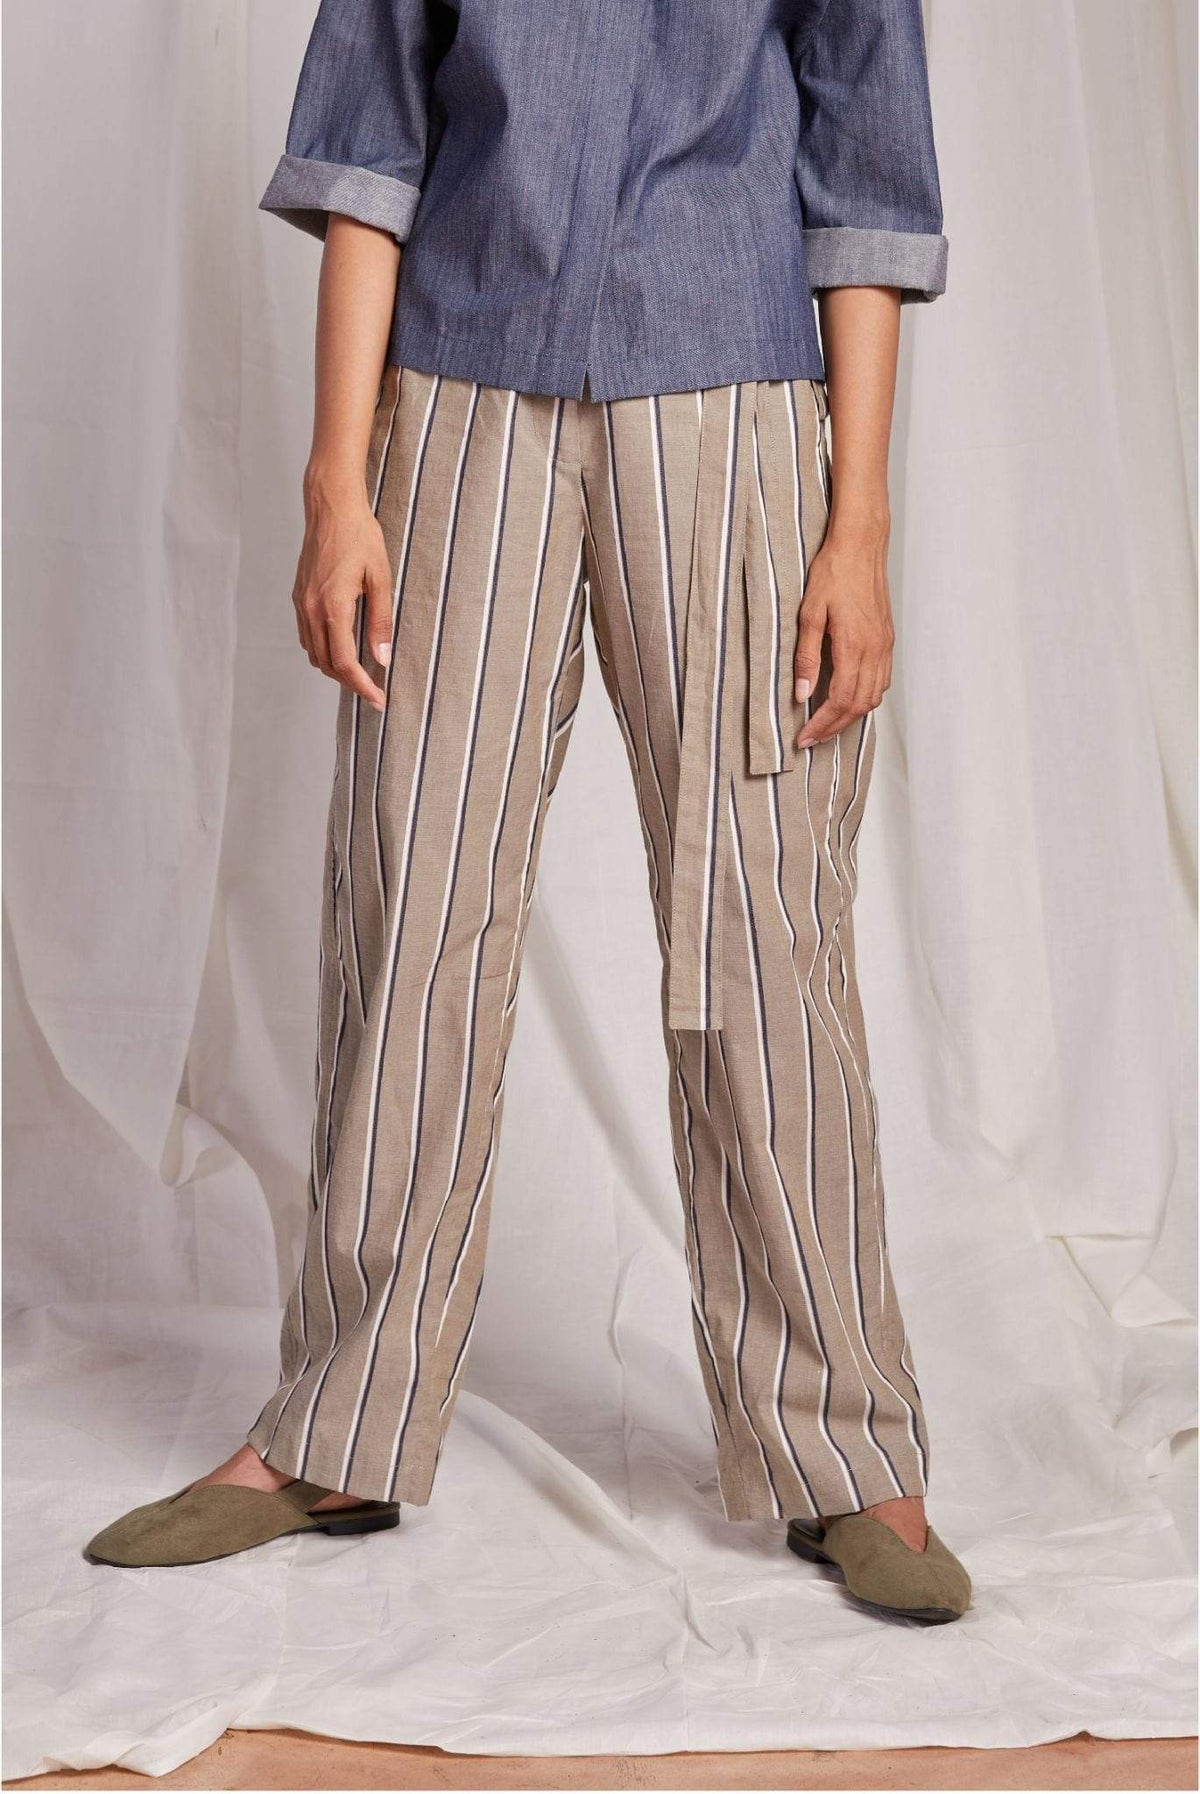 Naushad Ali Bottoms Striped Remi trouser